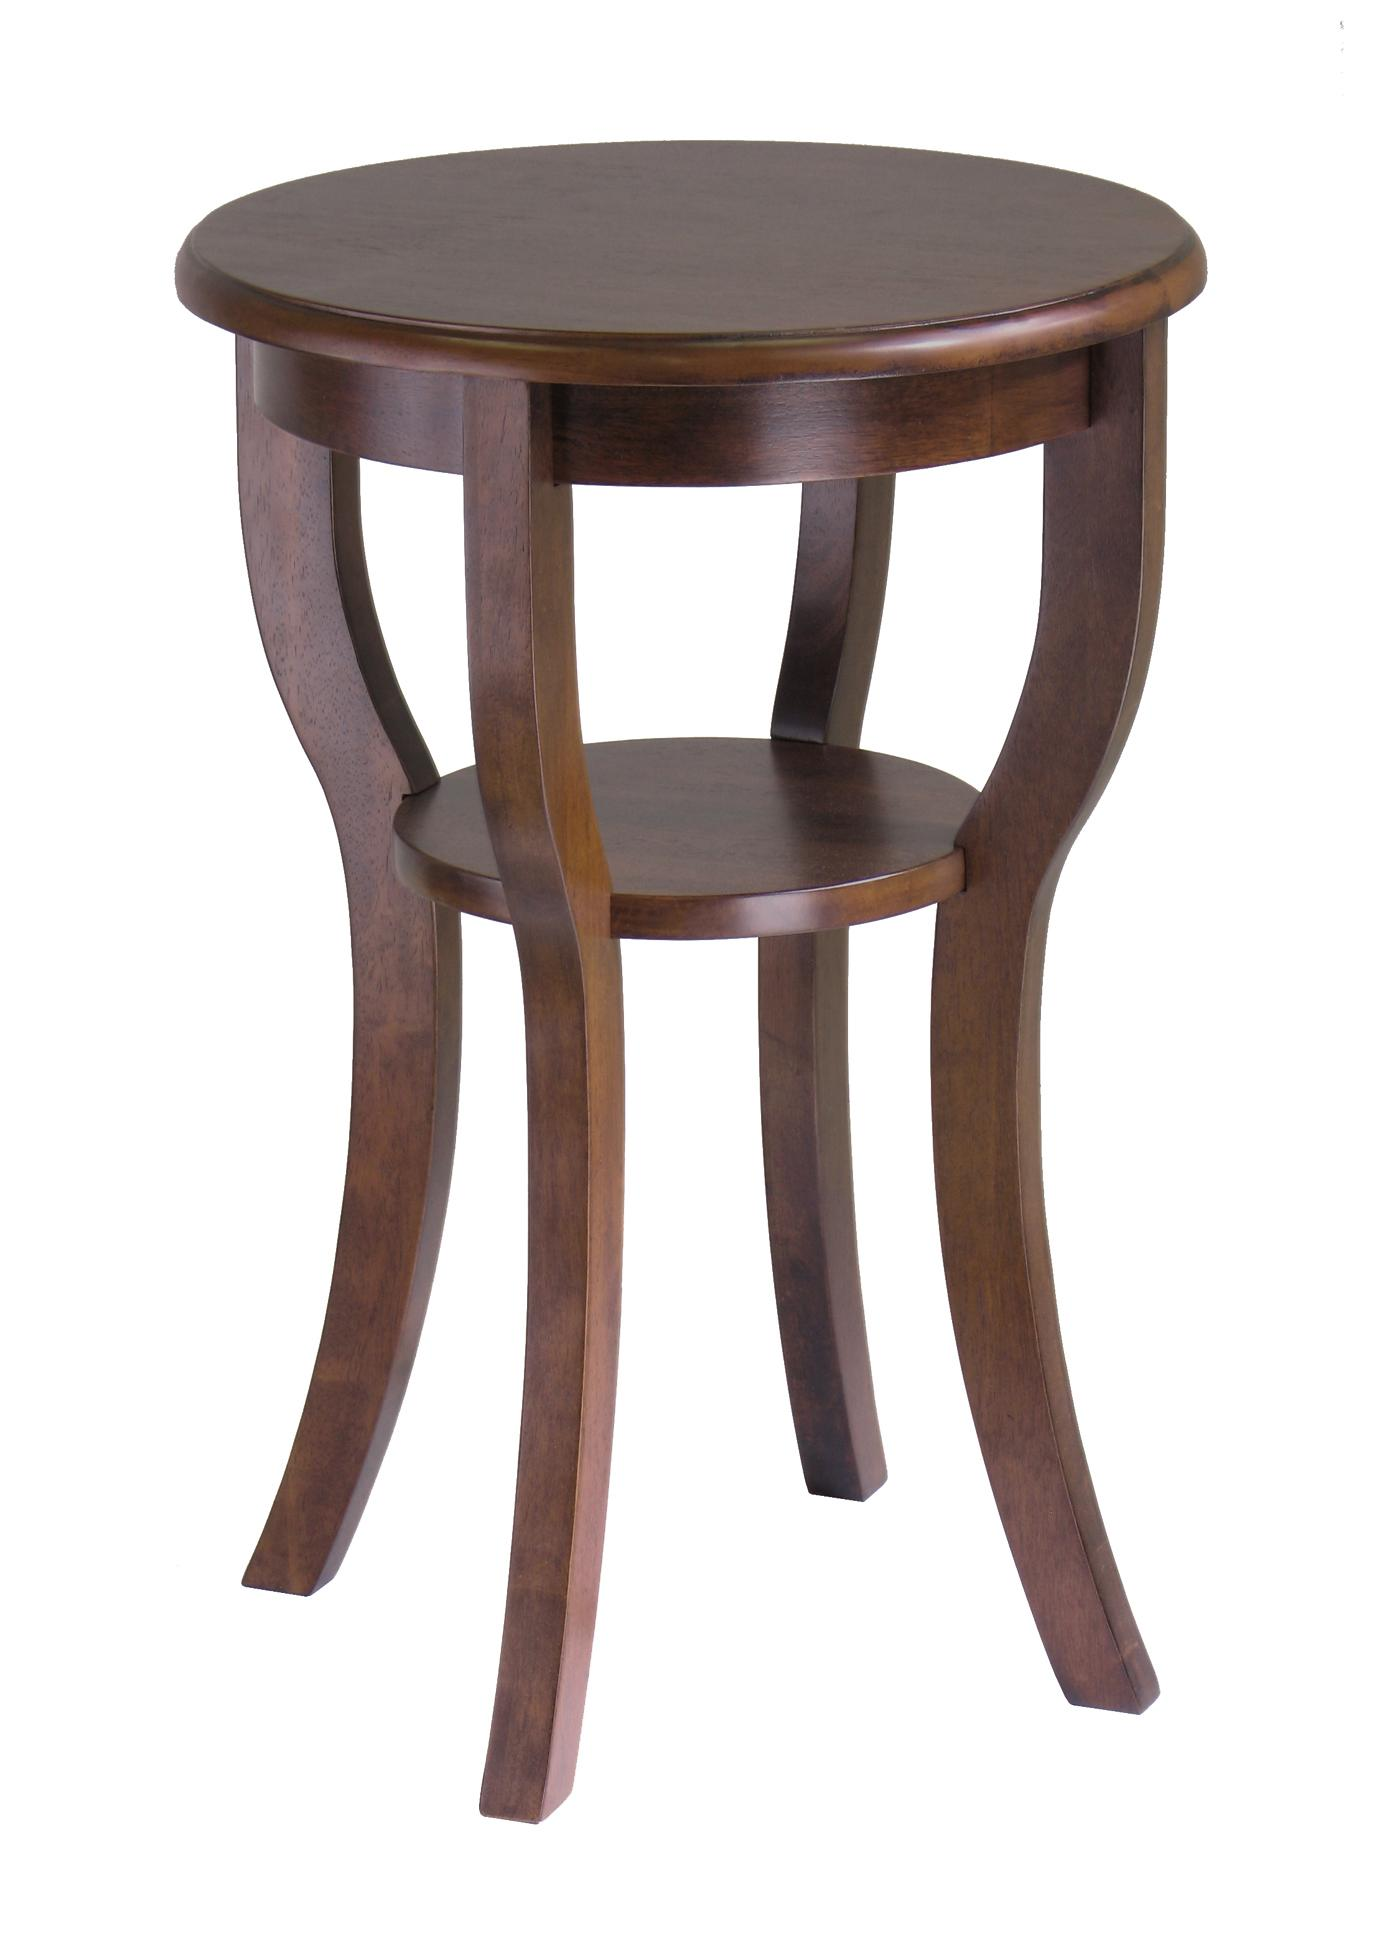 lovable round wood accent table with impressive wooden designs pinebrook unique wine racks vintage marble bistro antique low small collapsible side hall chests and consoles